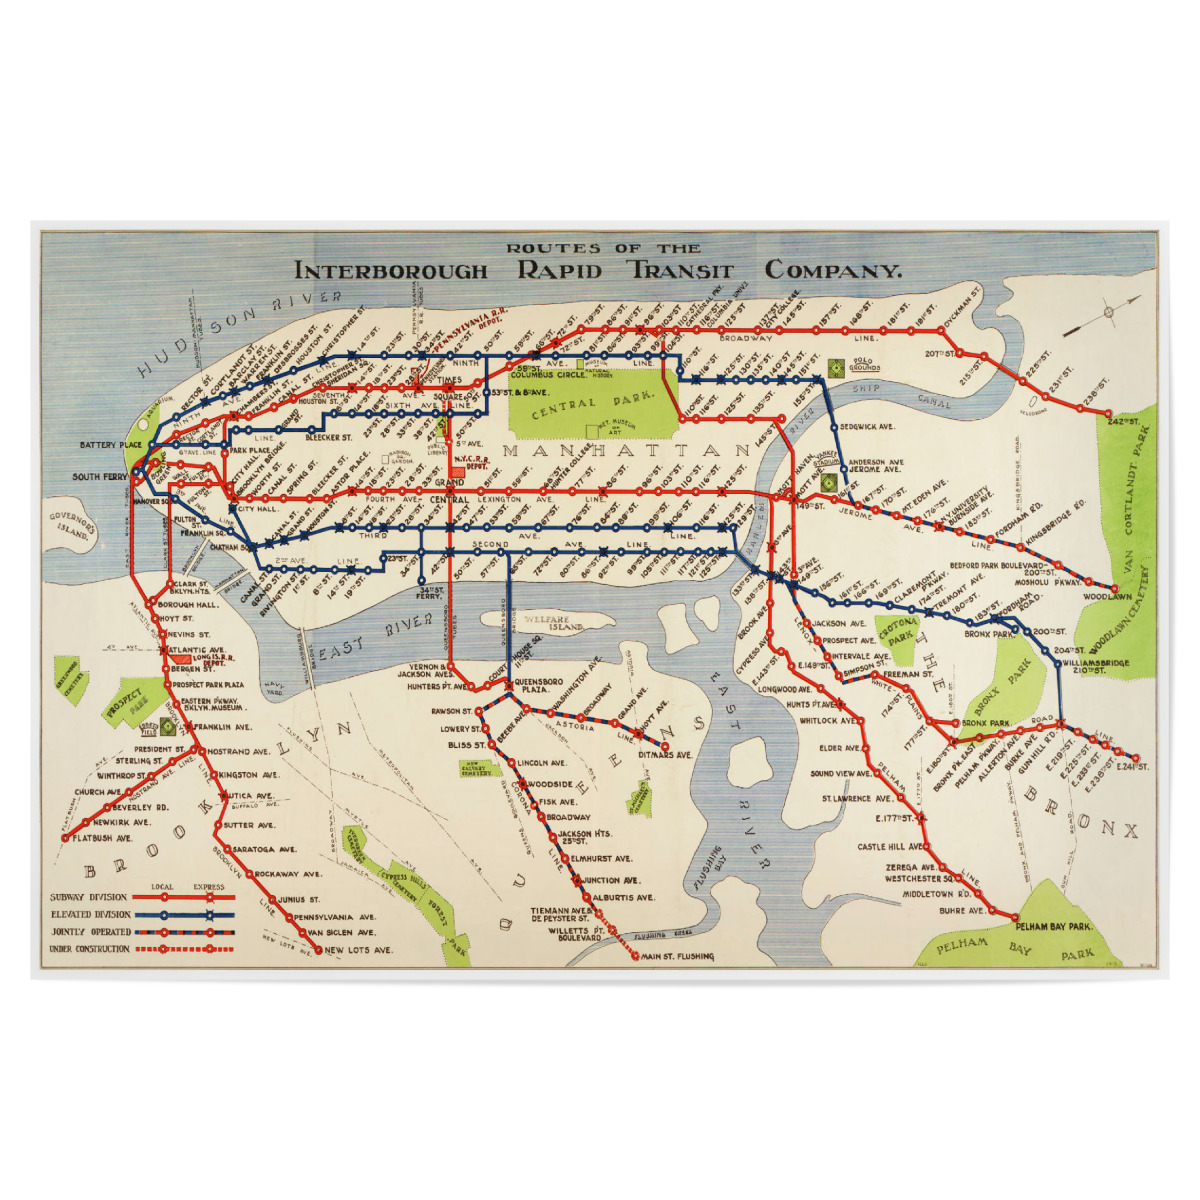 How To Purchase A Good New York City Subway Map.Purchase The New York City Metro Subway Map As A Poster At Artboxone